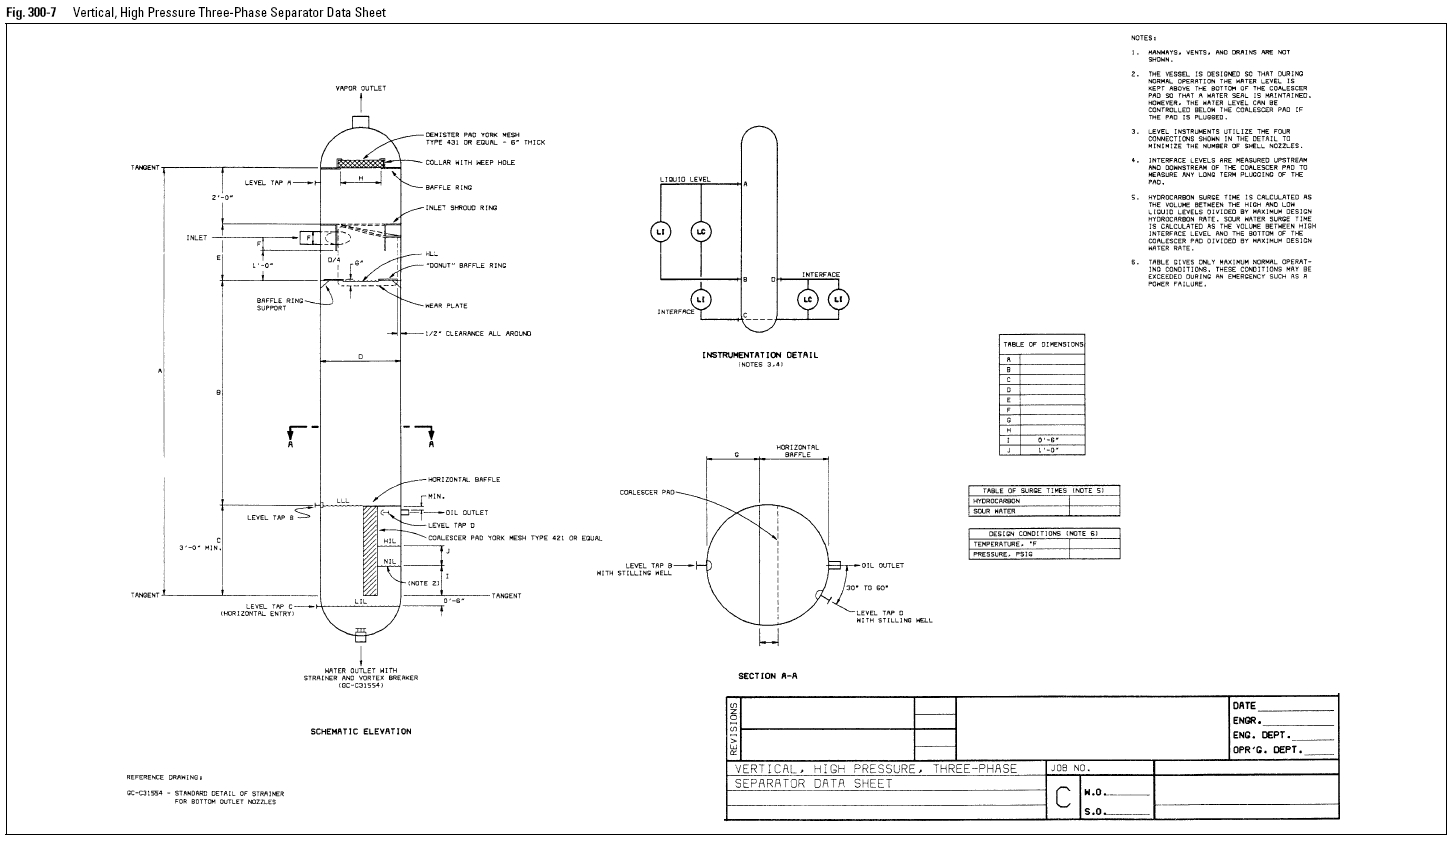 Vertical, High Pressure Three-Phase Separator Data Sheet